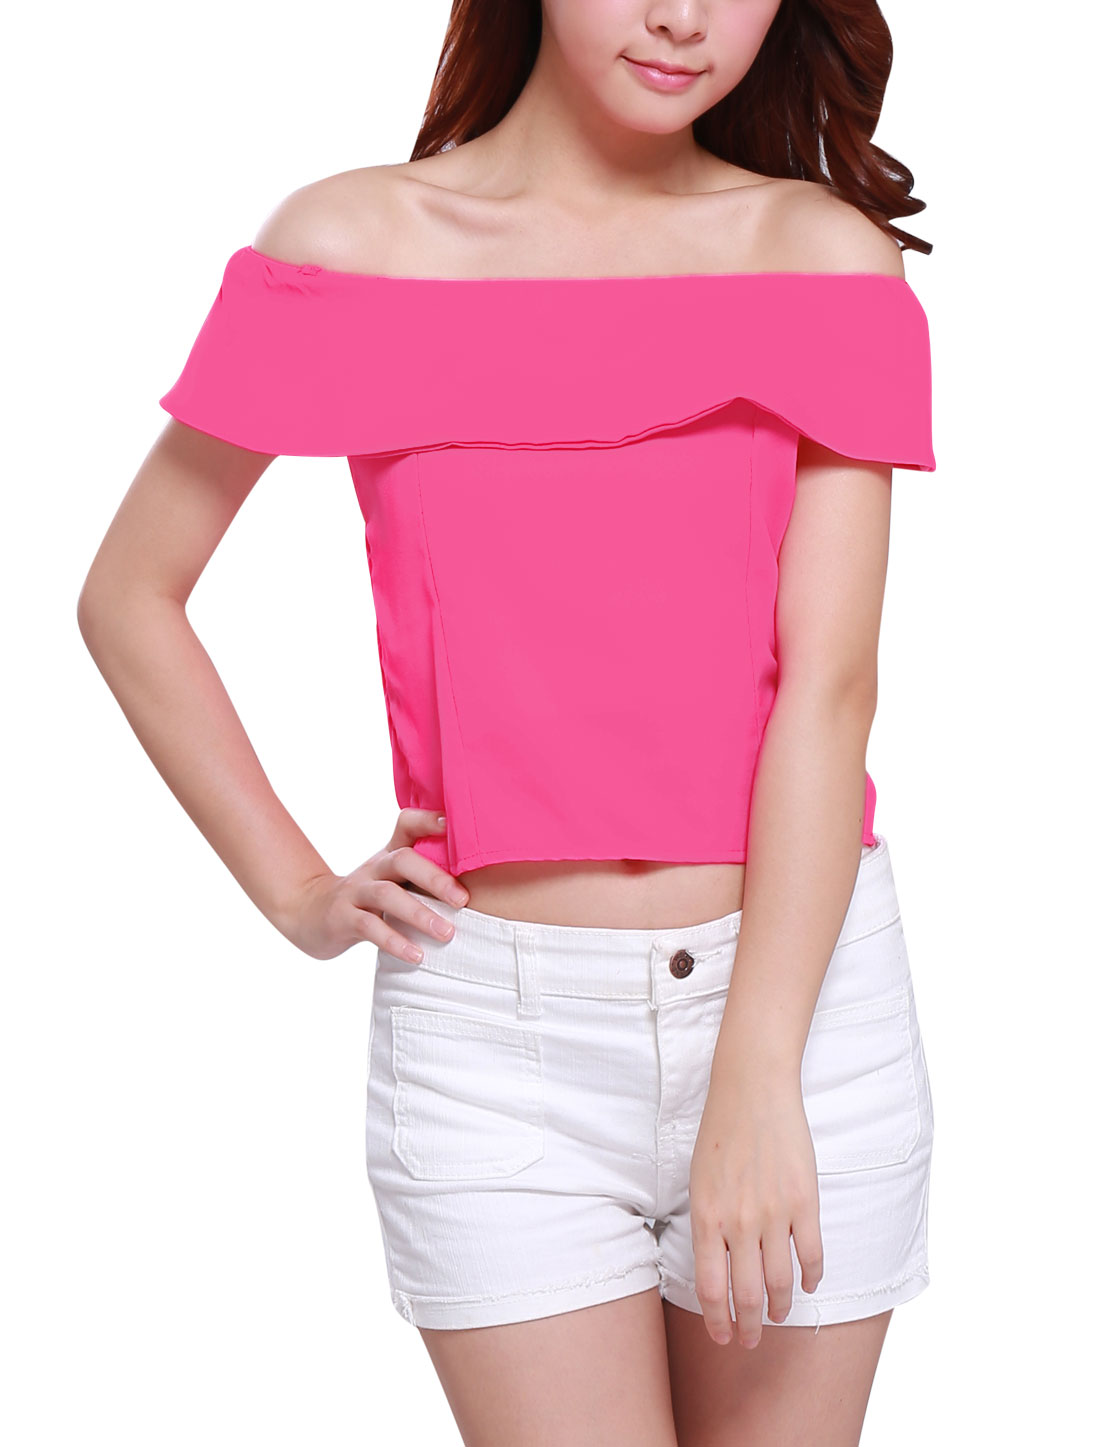 Women Elegant Conceal Side Zipper Ruffled Upper Cropped Top Fuchsia XS